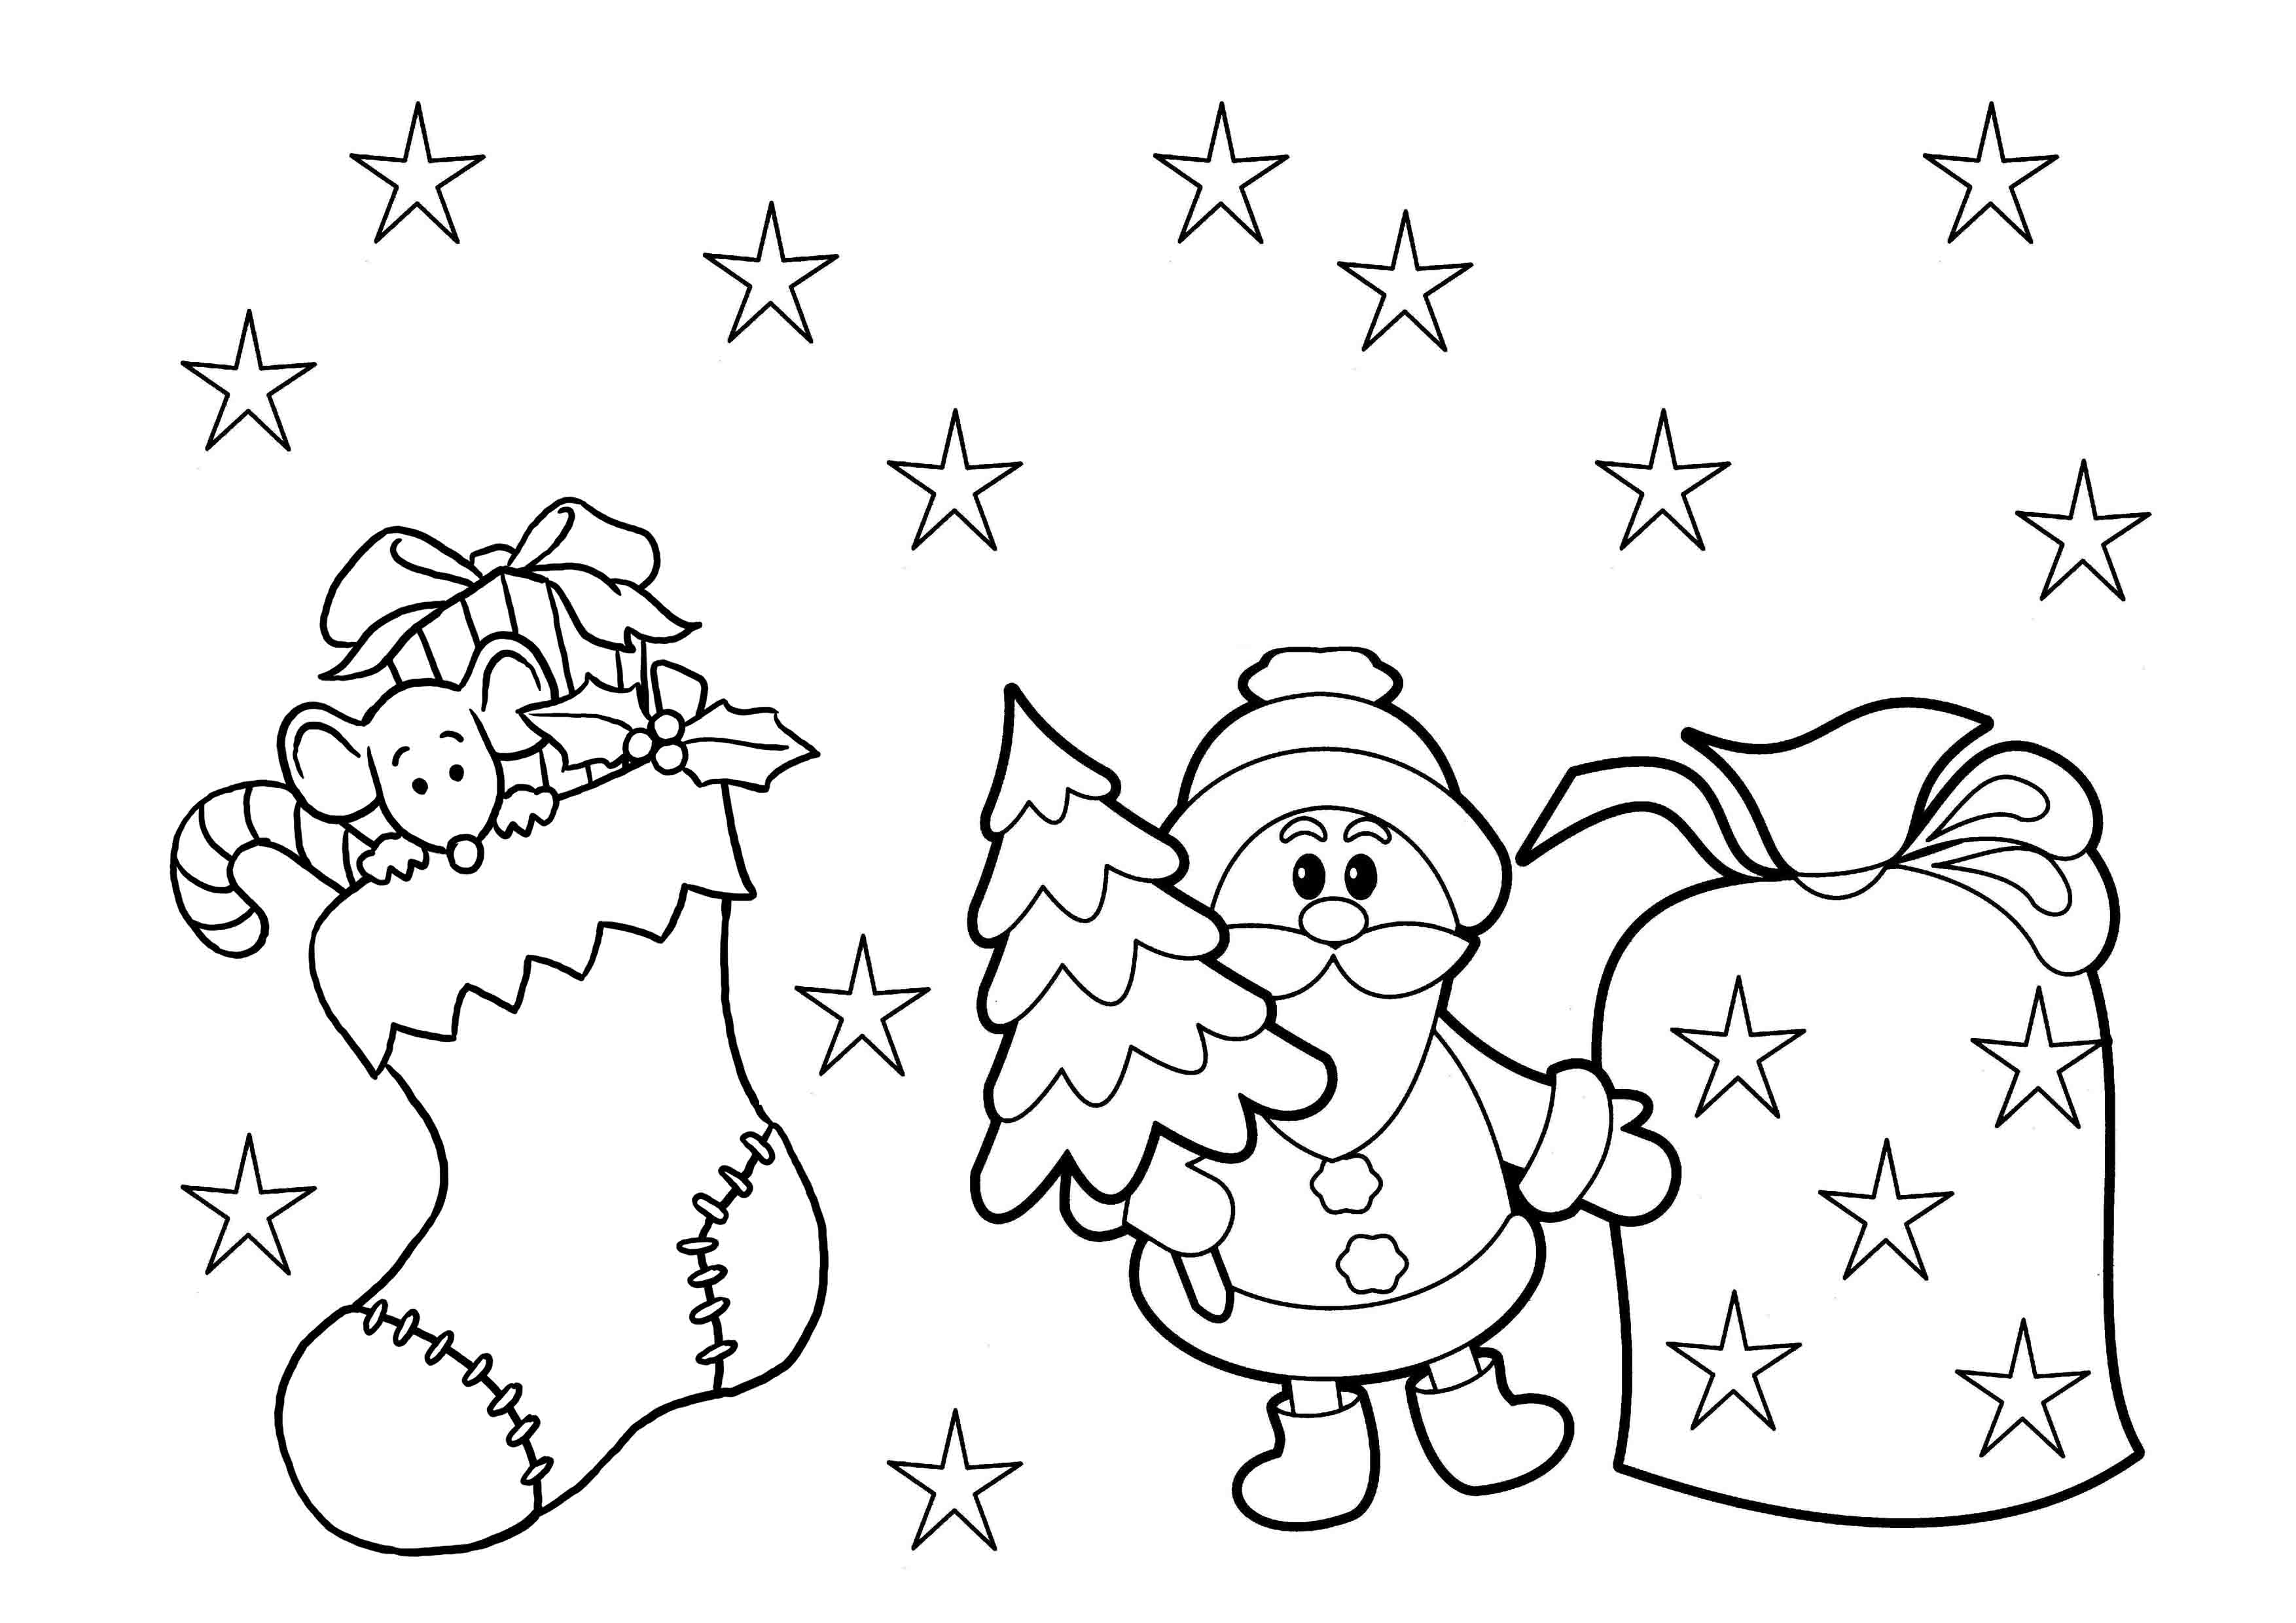 Coloring Pages : Christmas Coloring Sheets For Preschool Pages Print - Free Printable Christmas Coloring Pages For Kids